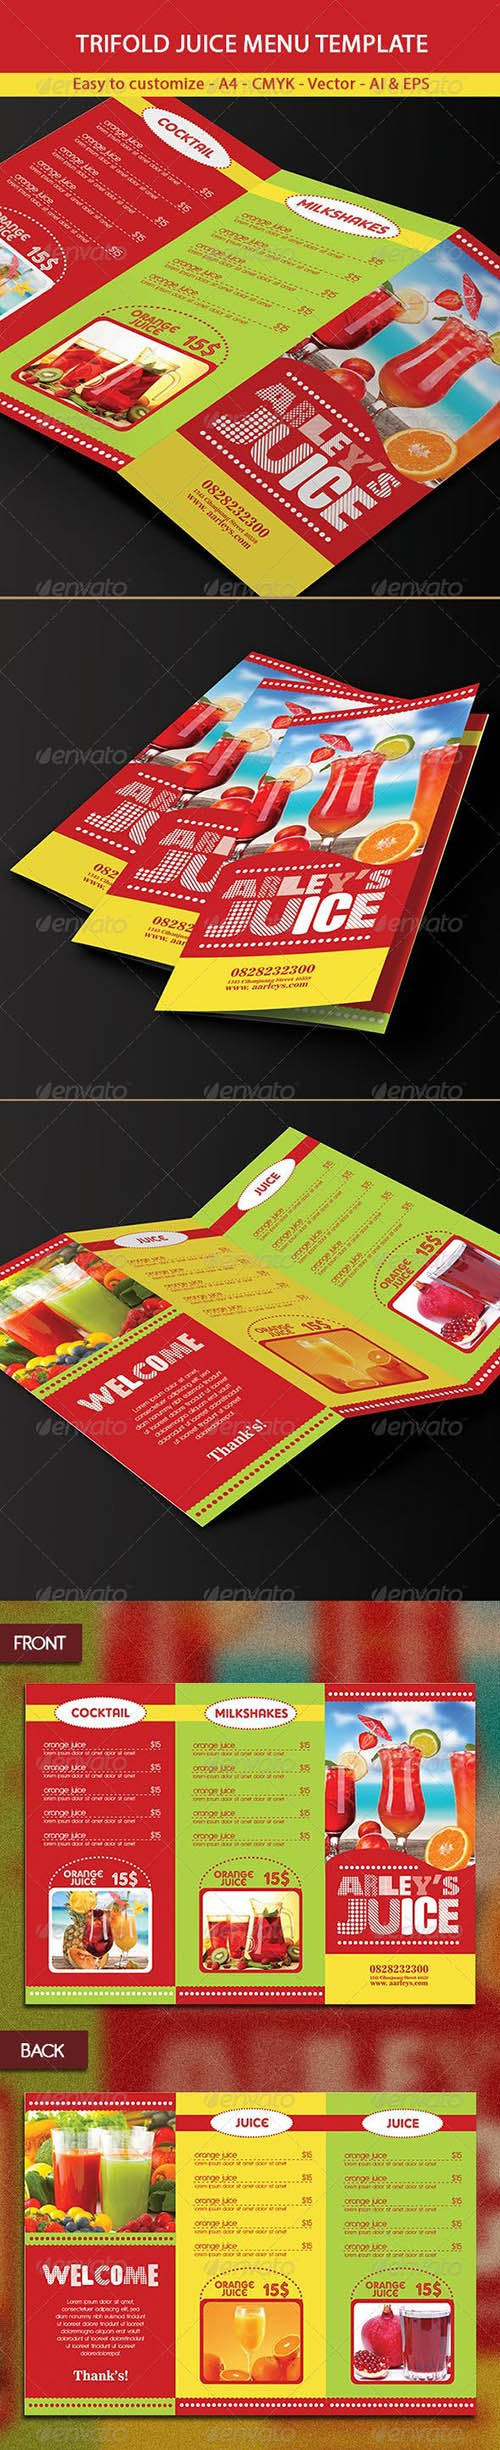 Graphicriver - Trifold Drinks Menu Template 6321530